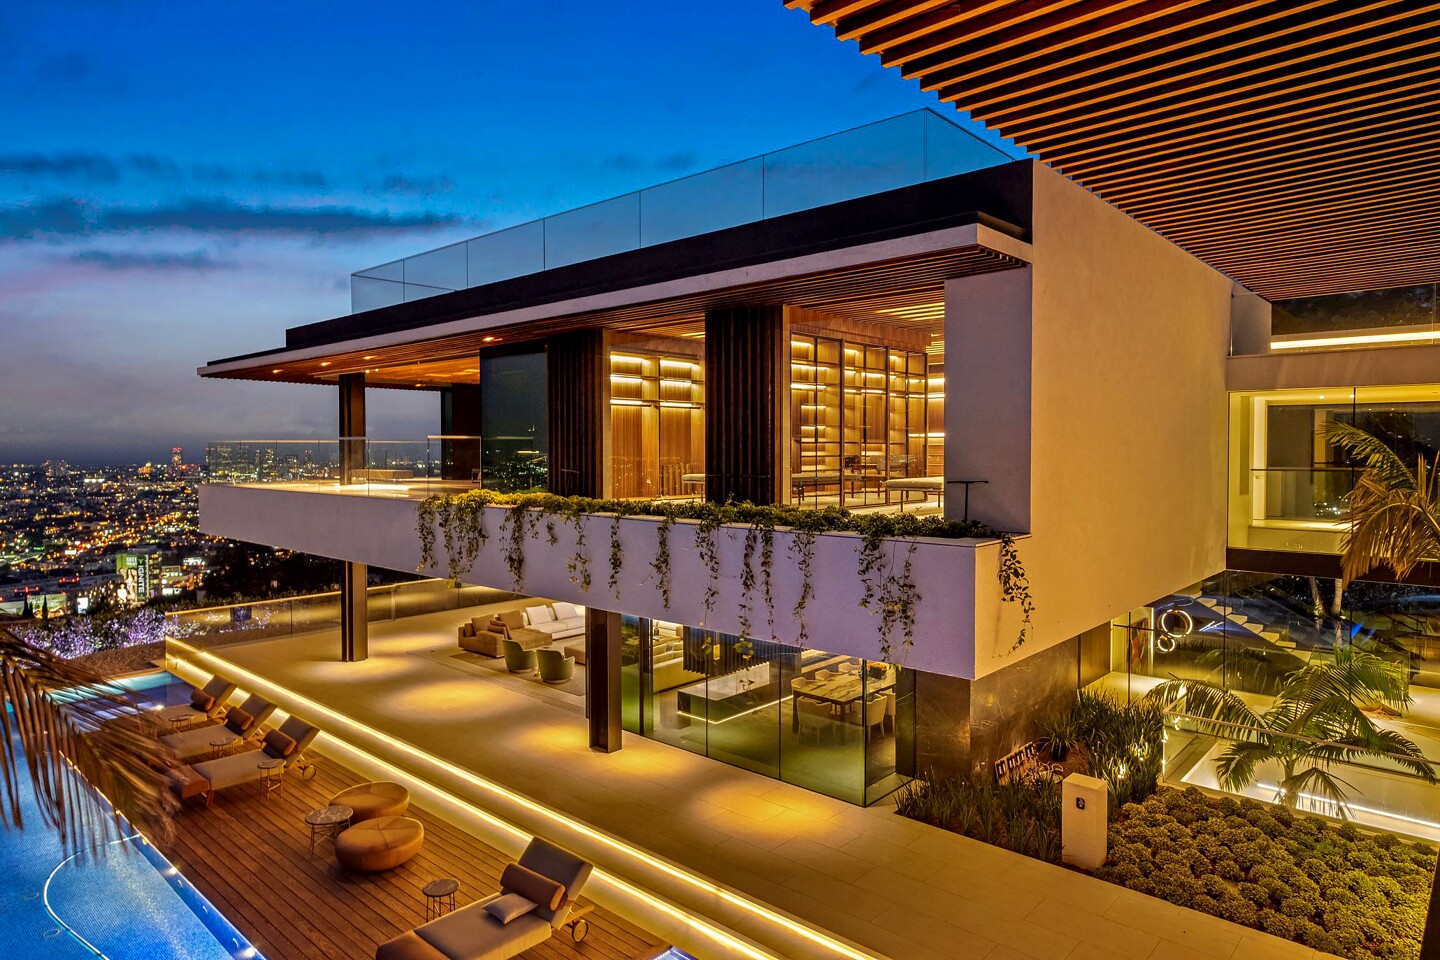 At 20,058 square feet, the contemporary showplace is among the largest homes in the Hollywood Hills. Even larger, it's price: $43.9 million.